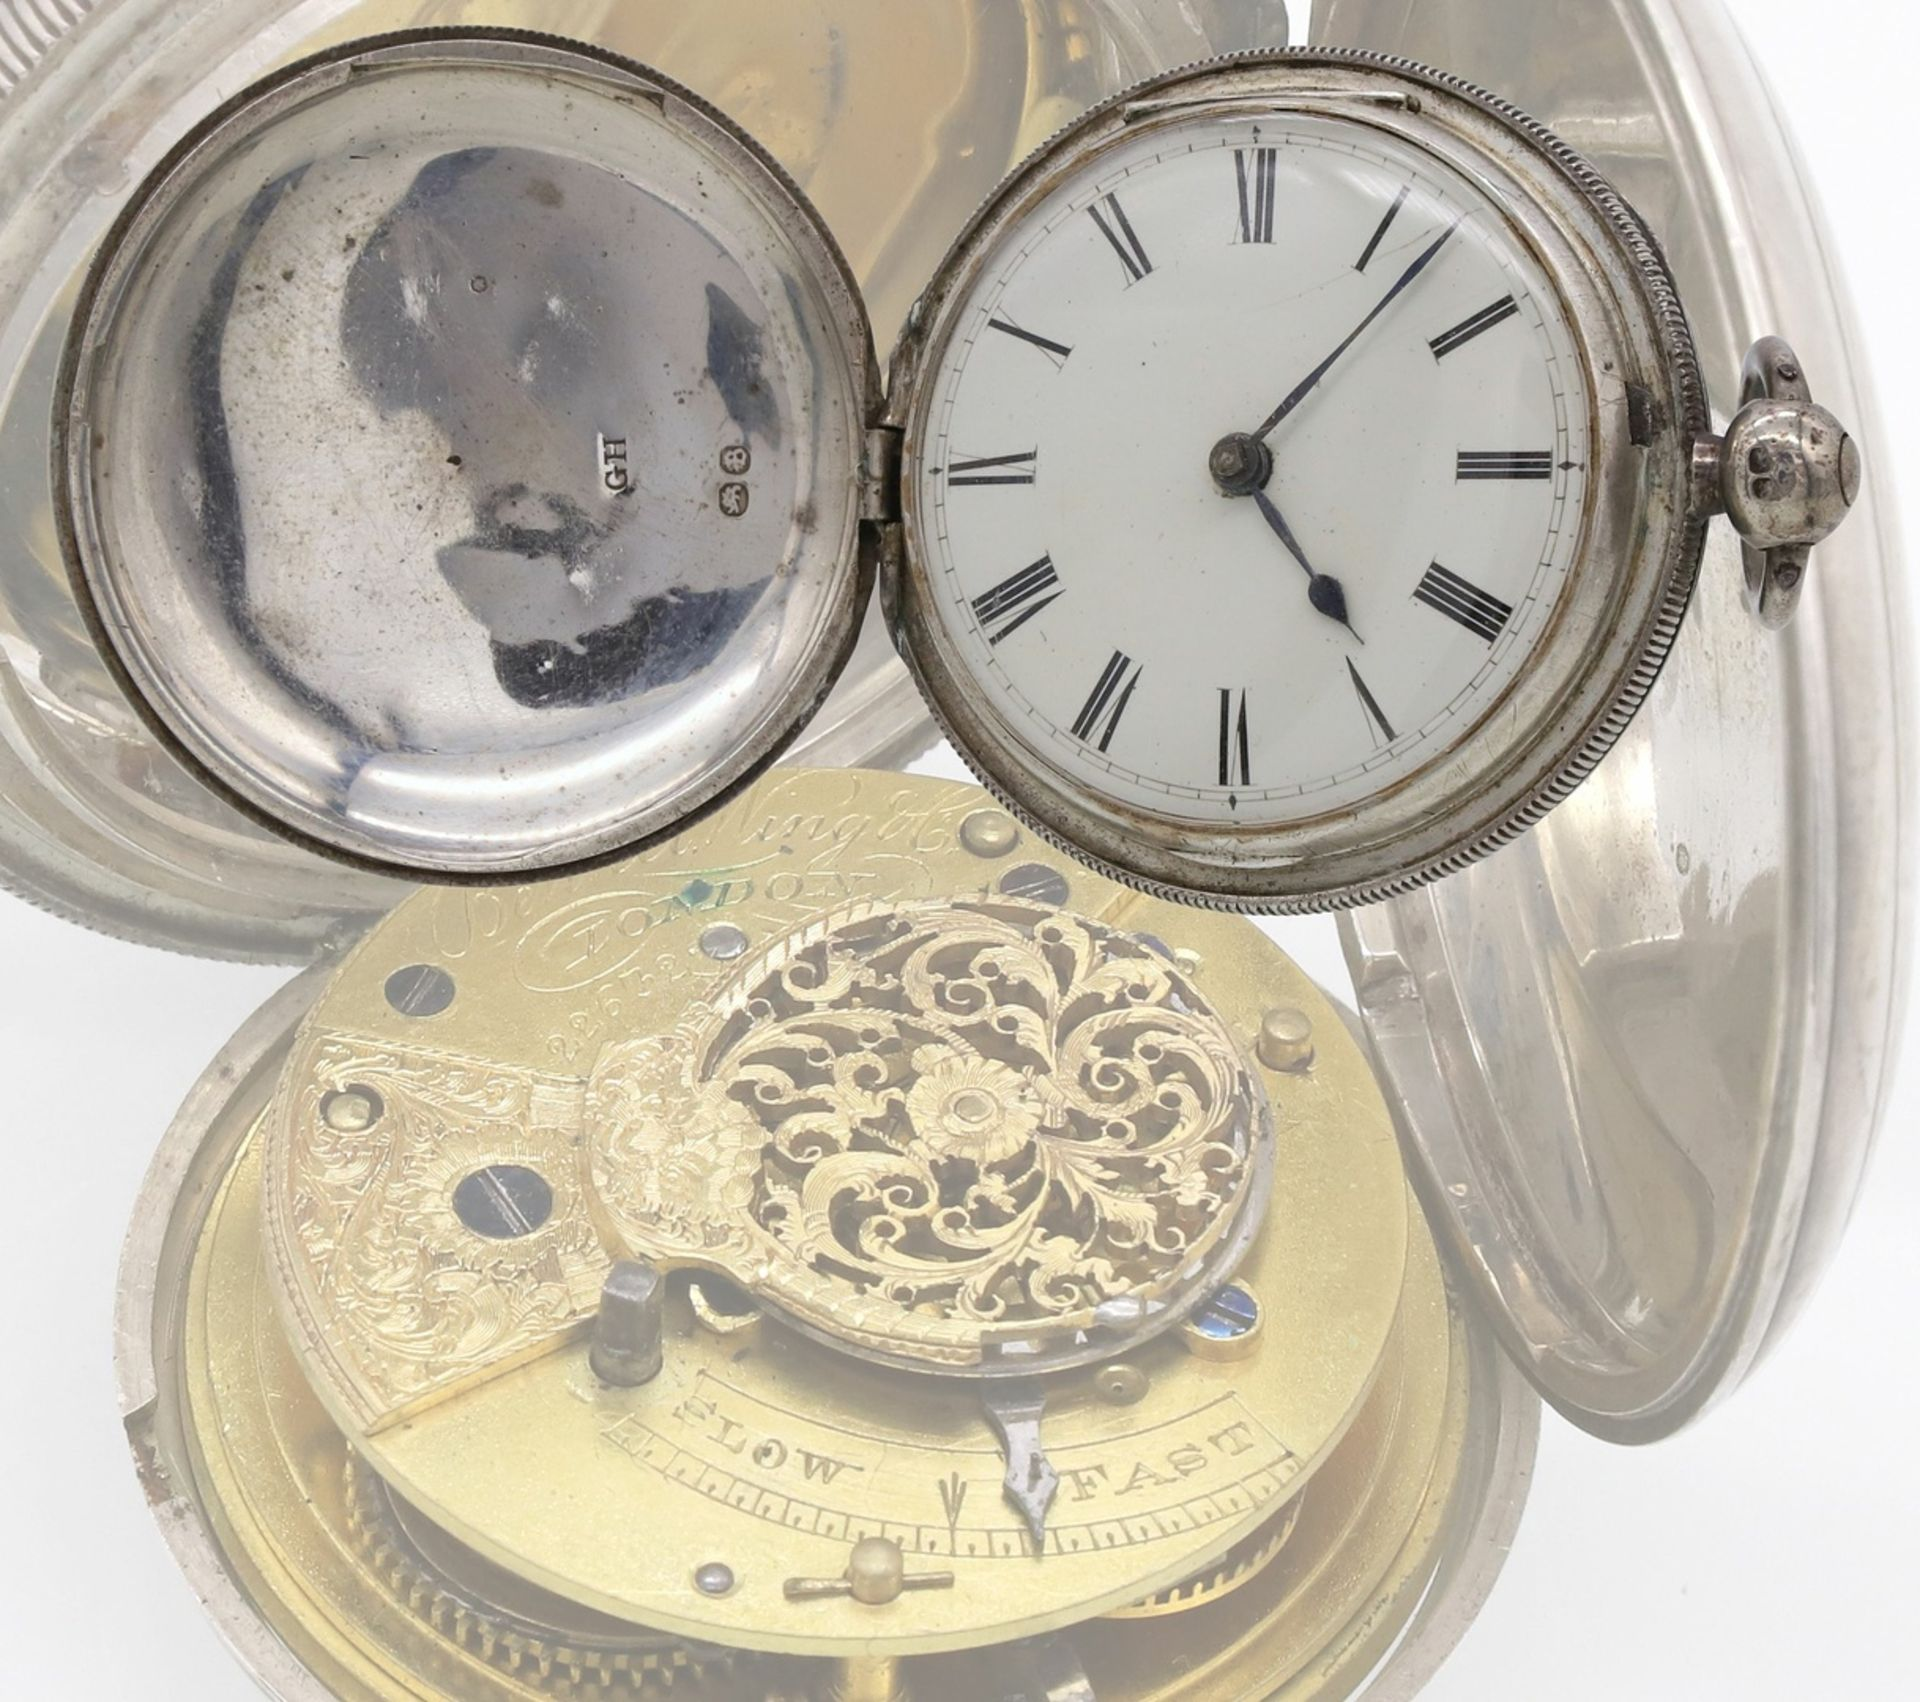 Bennet Wing London Spindeltaschenuhr mit Sprungdeckel, 1837